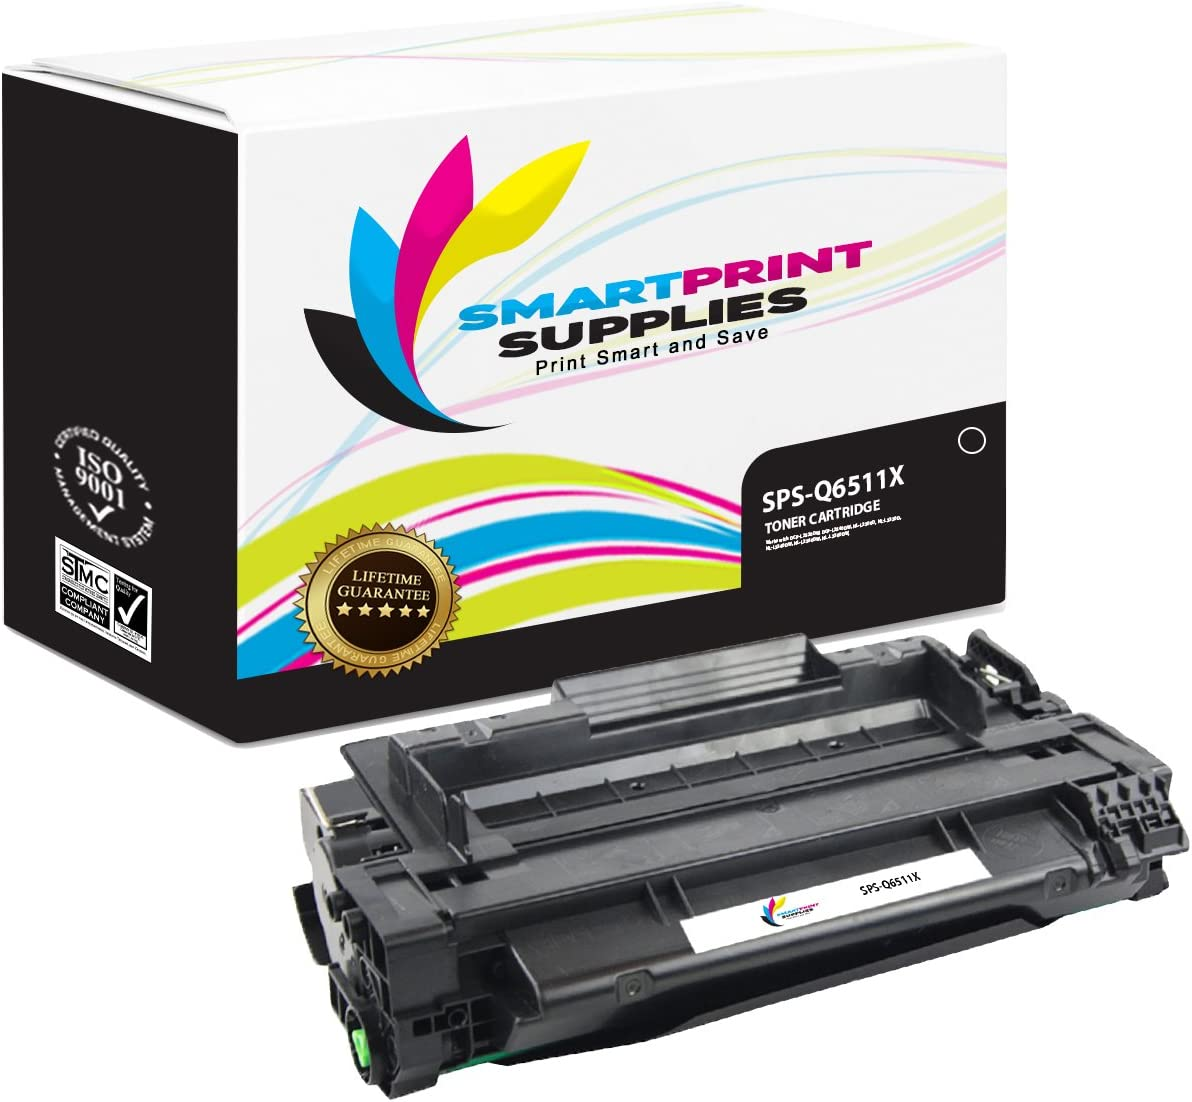 12,000 Pages Smart Print Supplies Compatible 11X Q6511X Black High Yield Toner Cartridge Replacement for HP Laserjet 2400 2420 2430 Printers